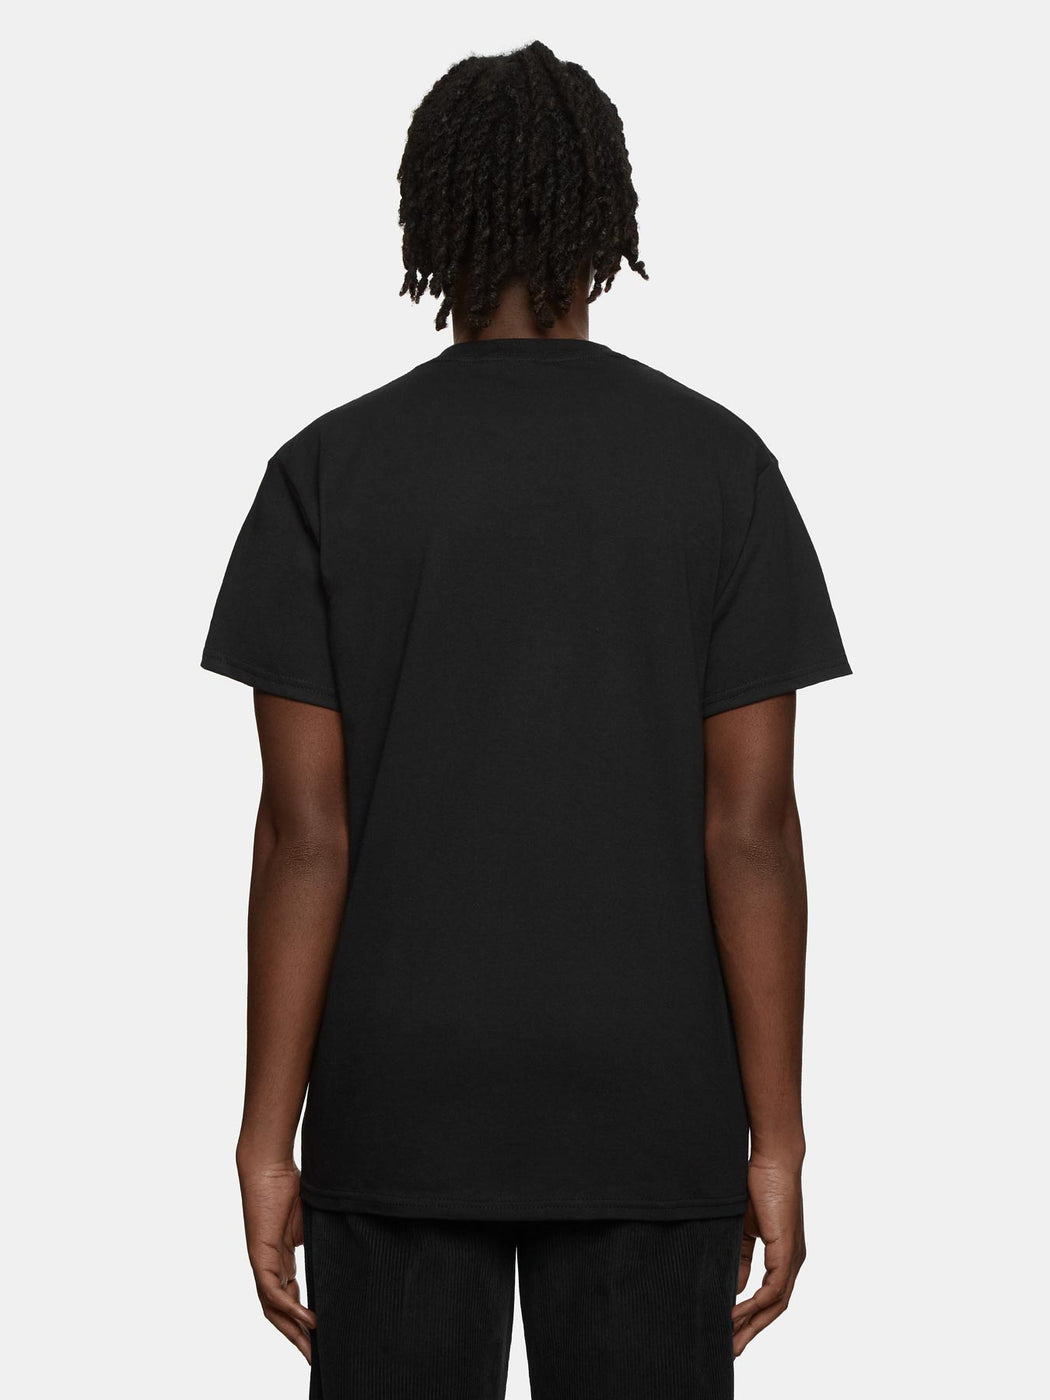 KING OWUSU Nerve Control Black T-shirt